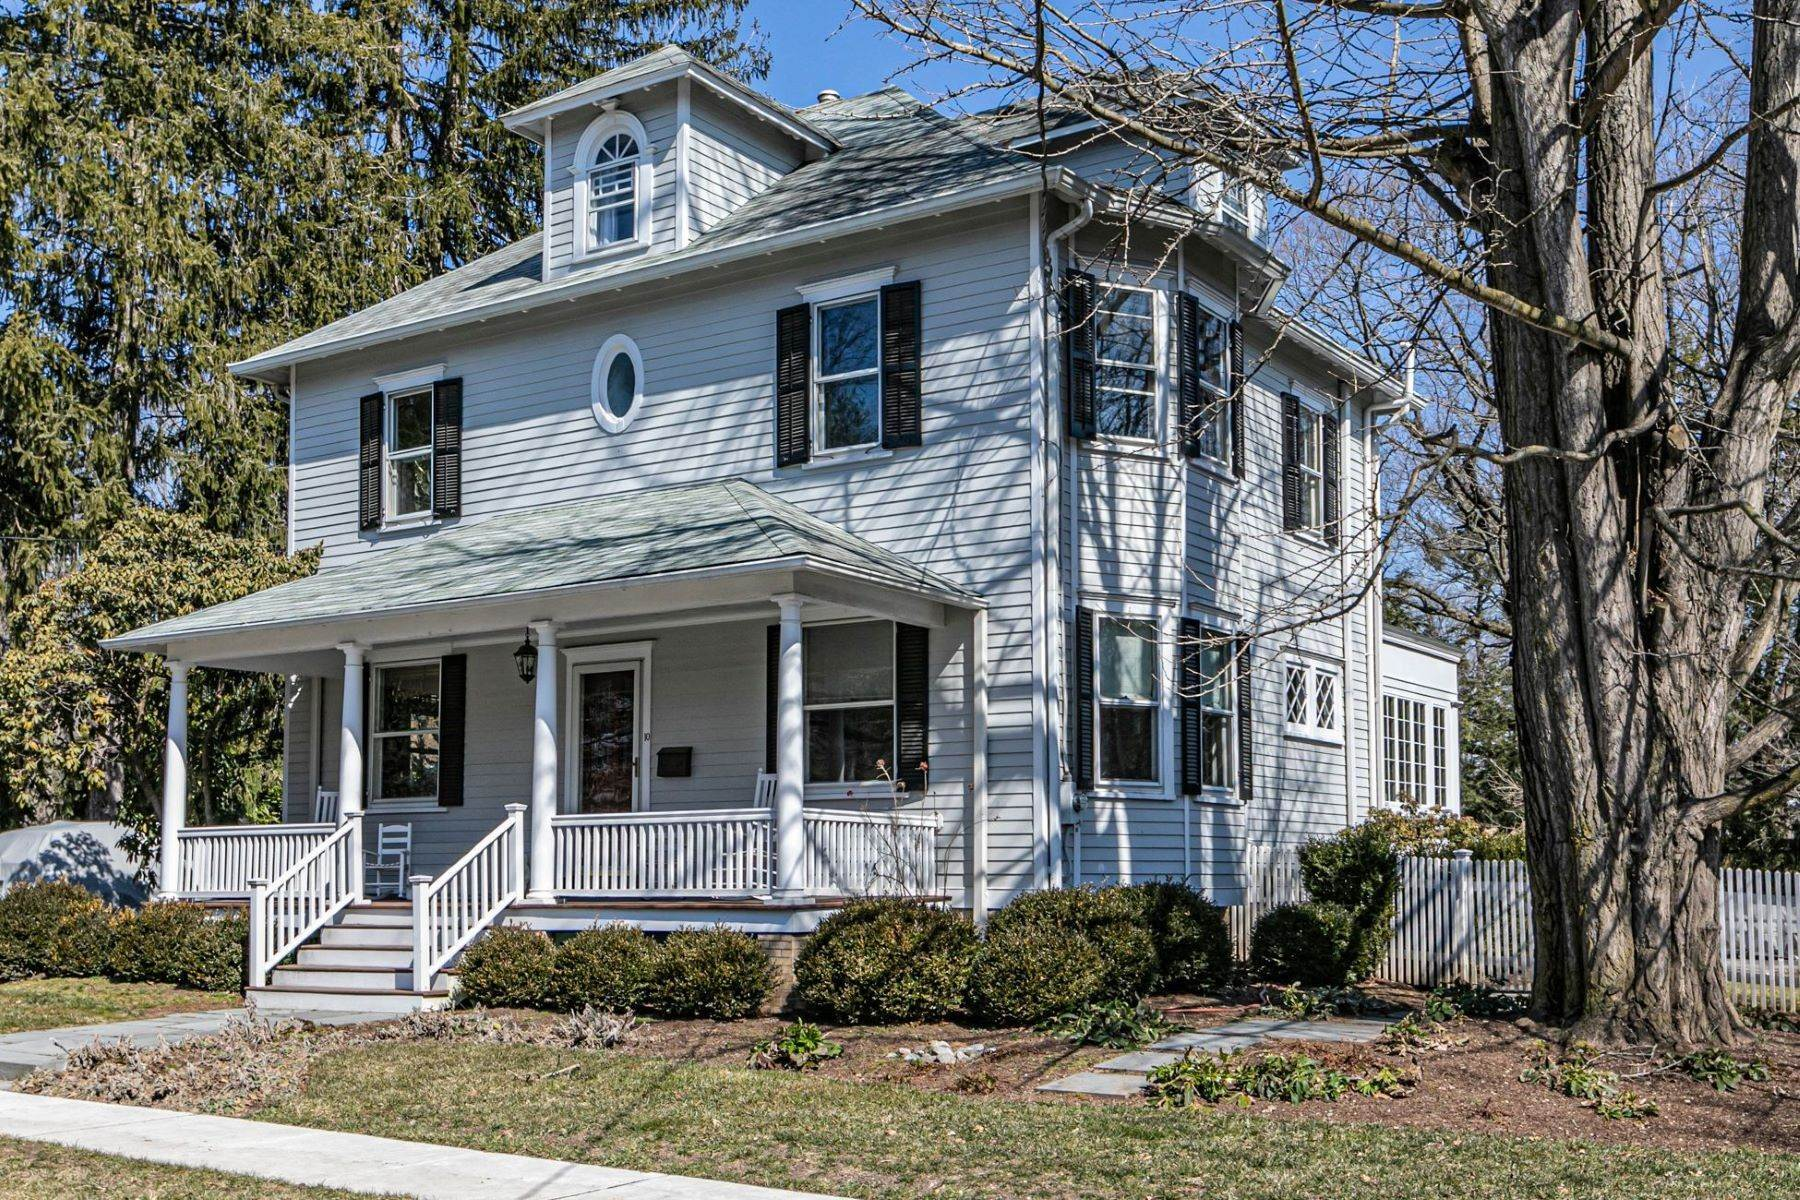 Single Family Homes for Sale at Picture Perfect Home Steps From Main Street 10 Green Avenue, Lawrenceville, New Jersey 08648 United States